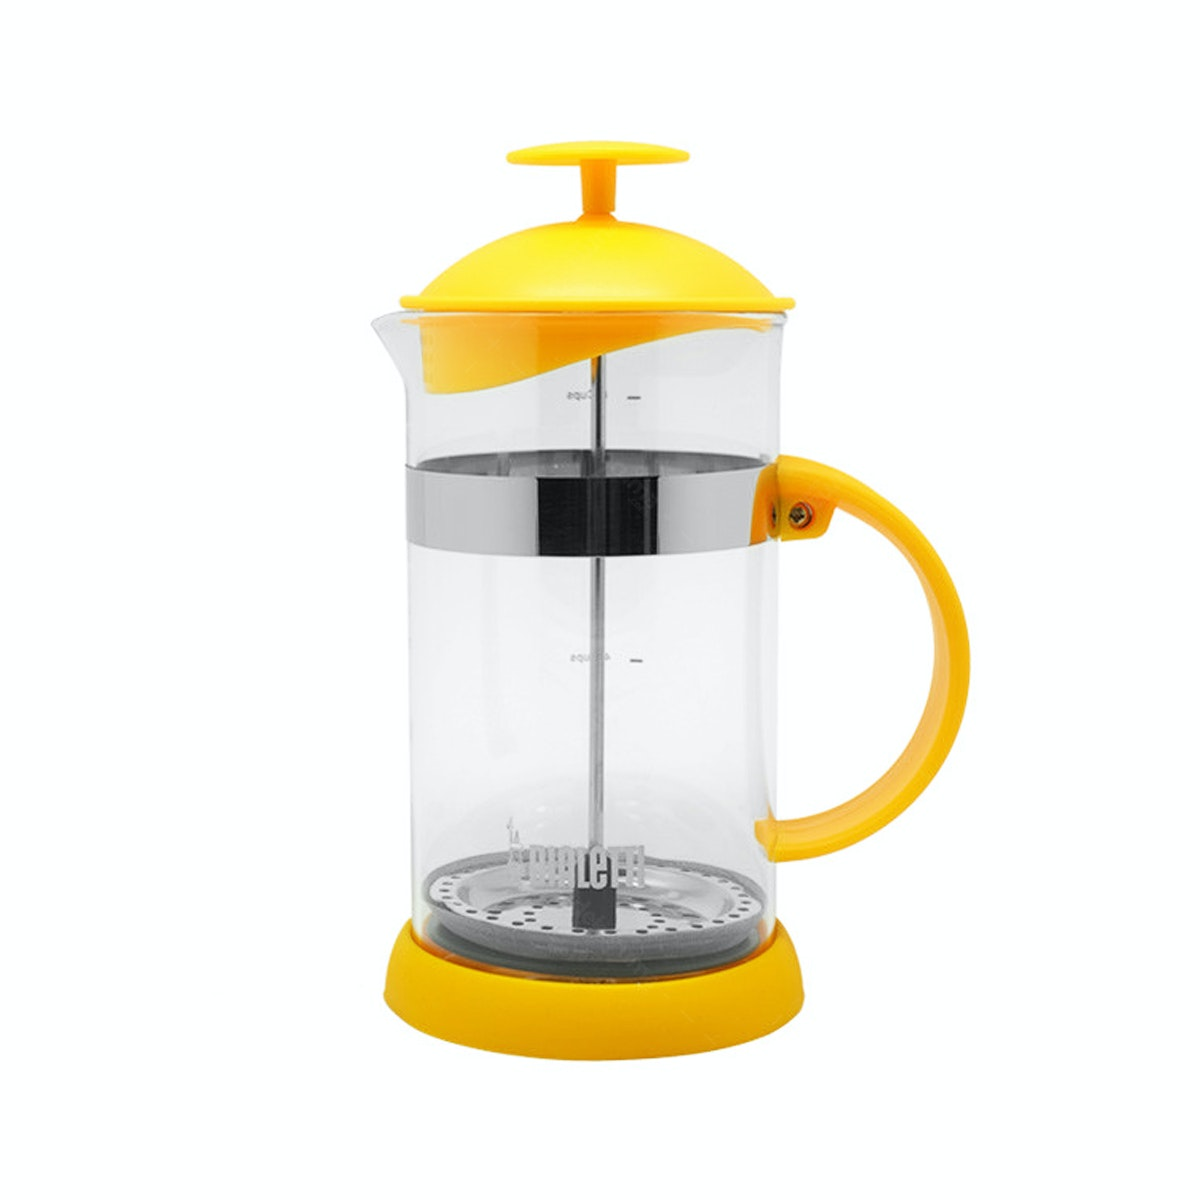 Bialetti Coffee Press 1L Yellow